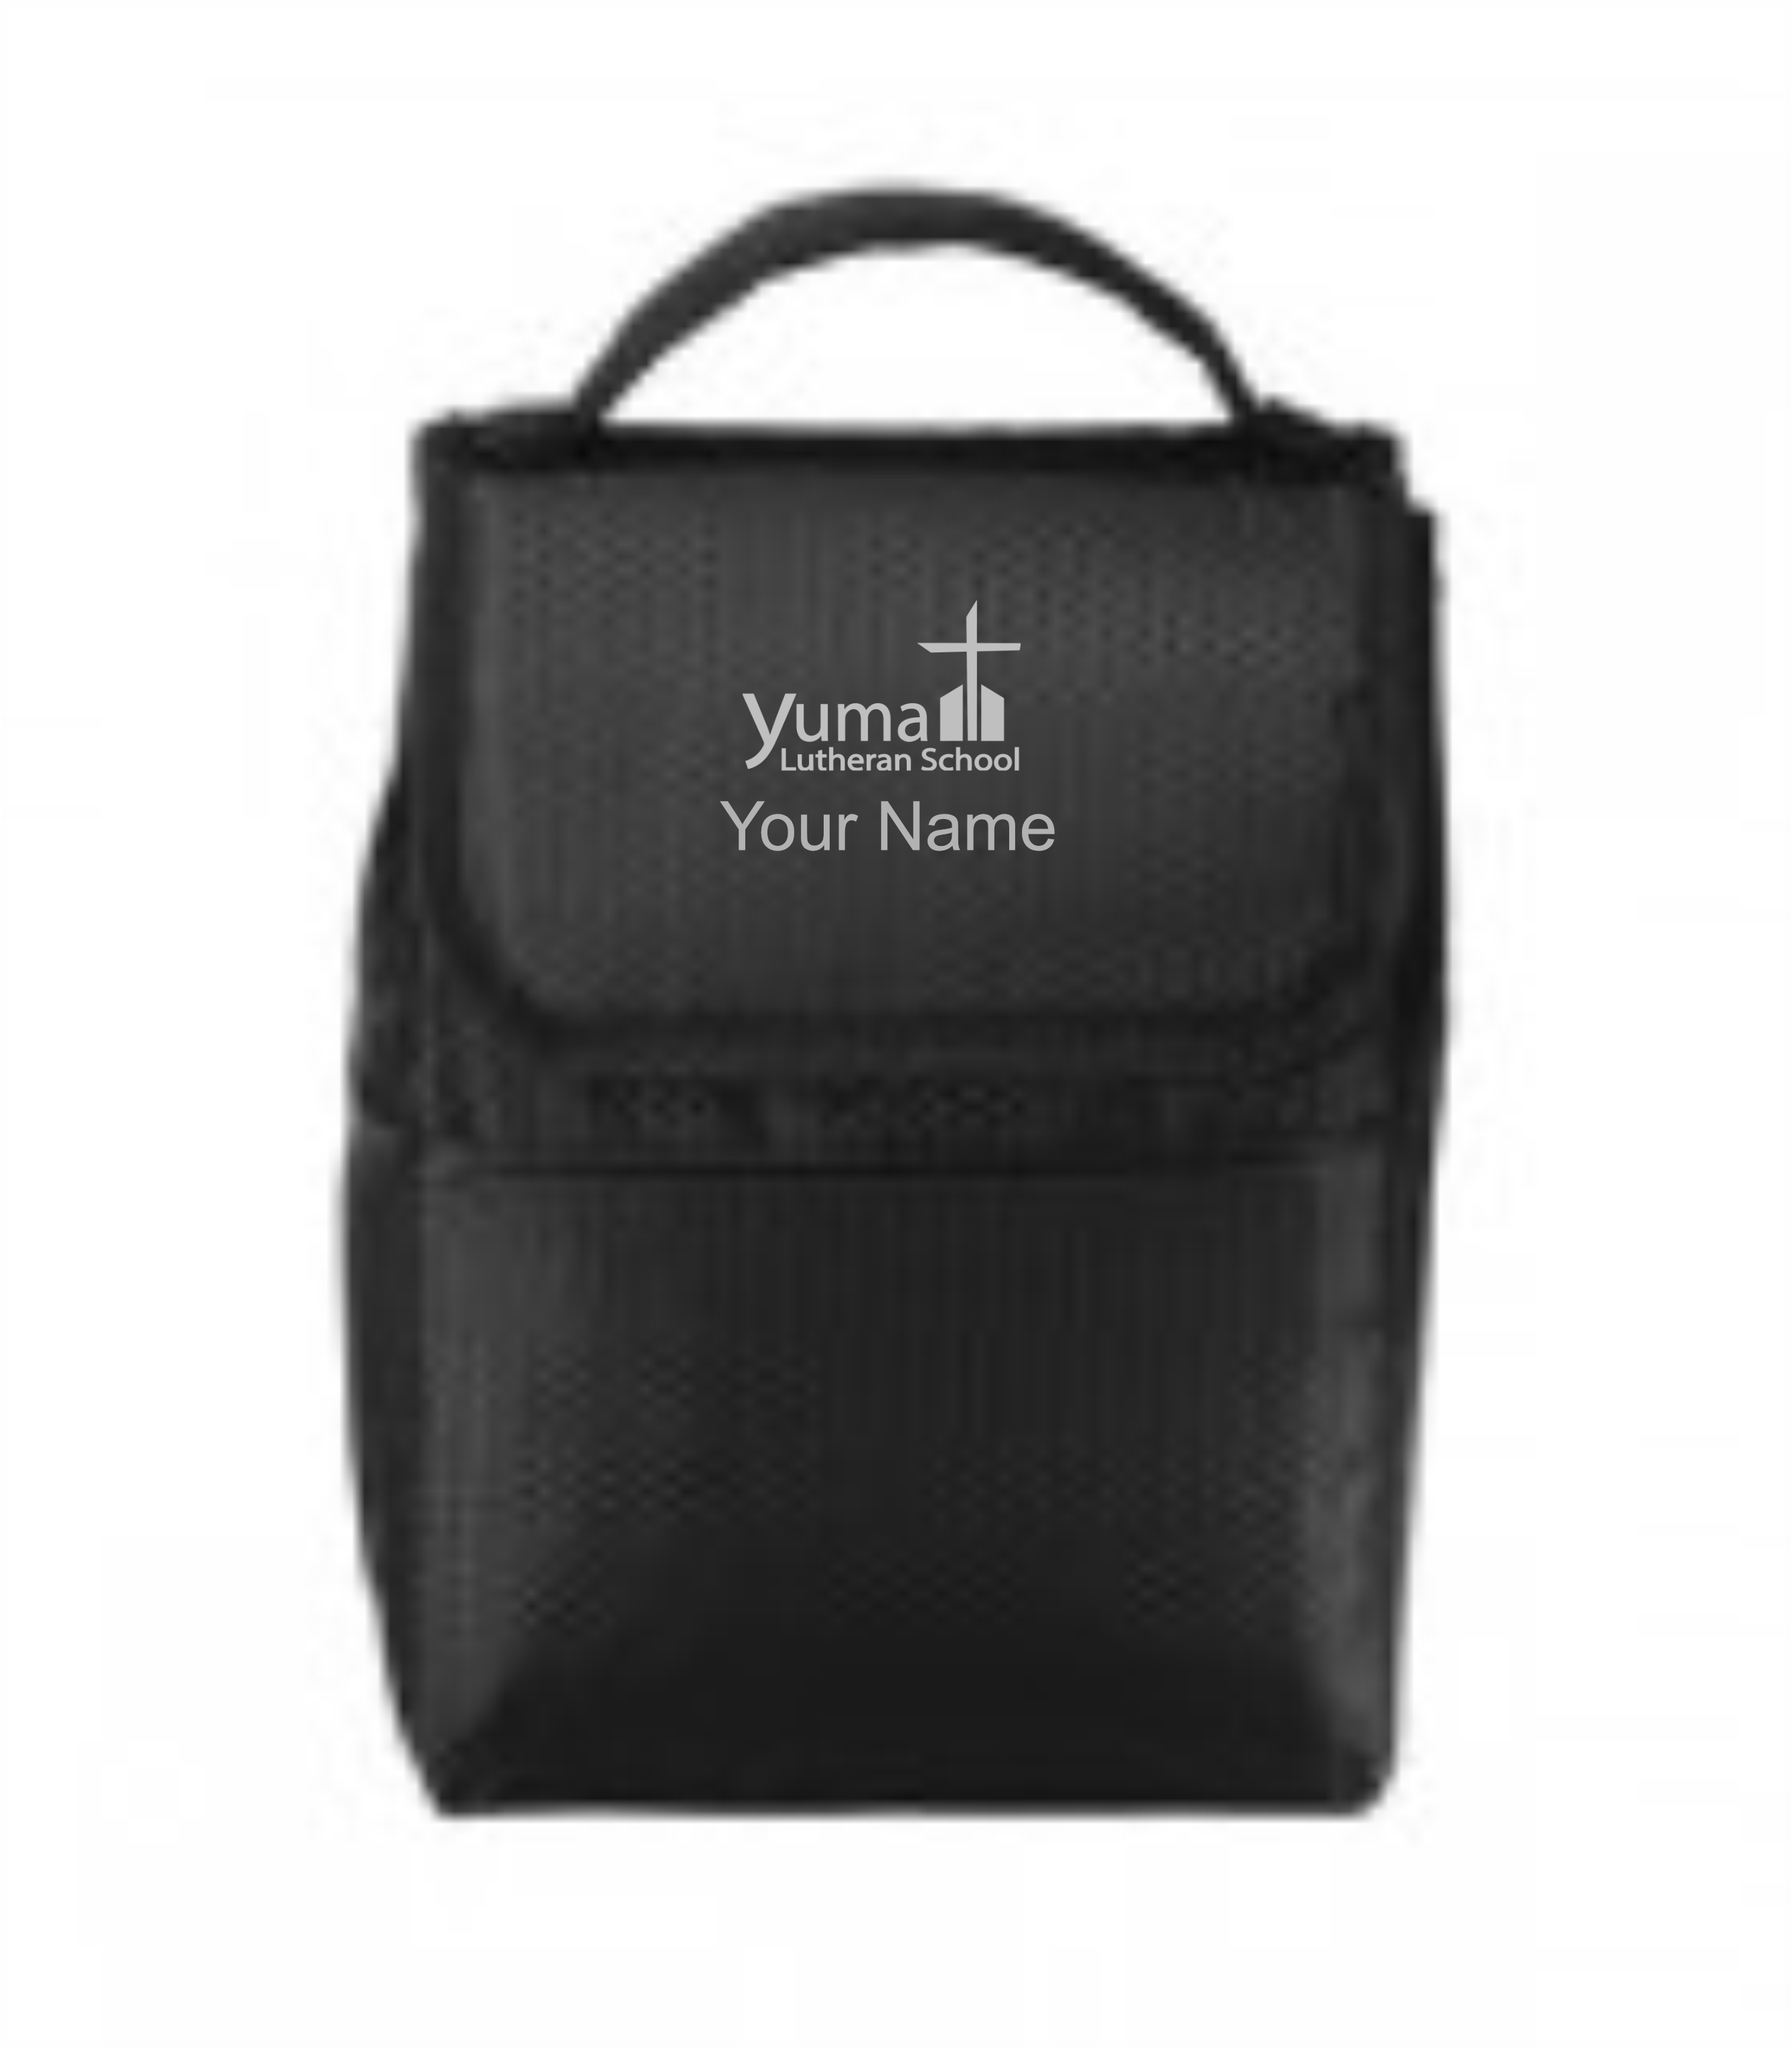 Port Authority® Lunch Bag Cooler - YLS (Lunch Bag Colors: Black/ Black - YLS)